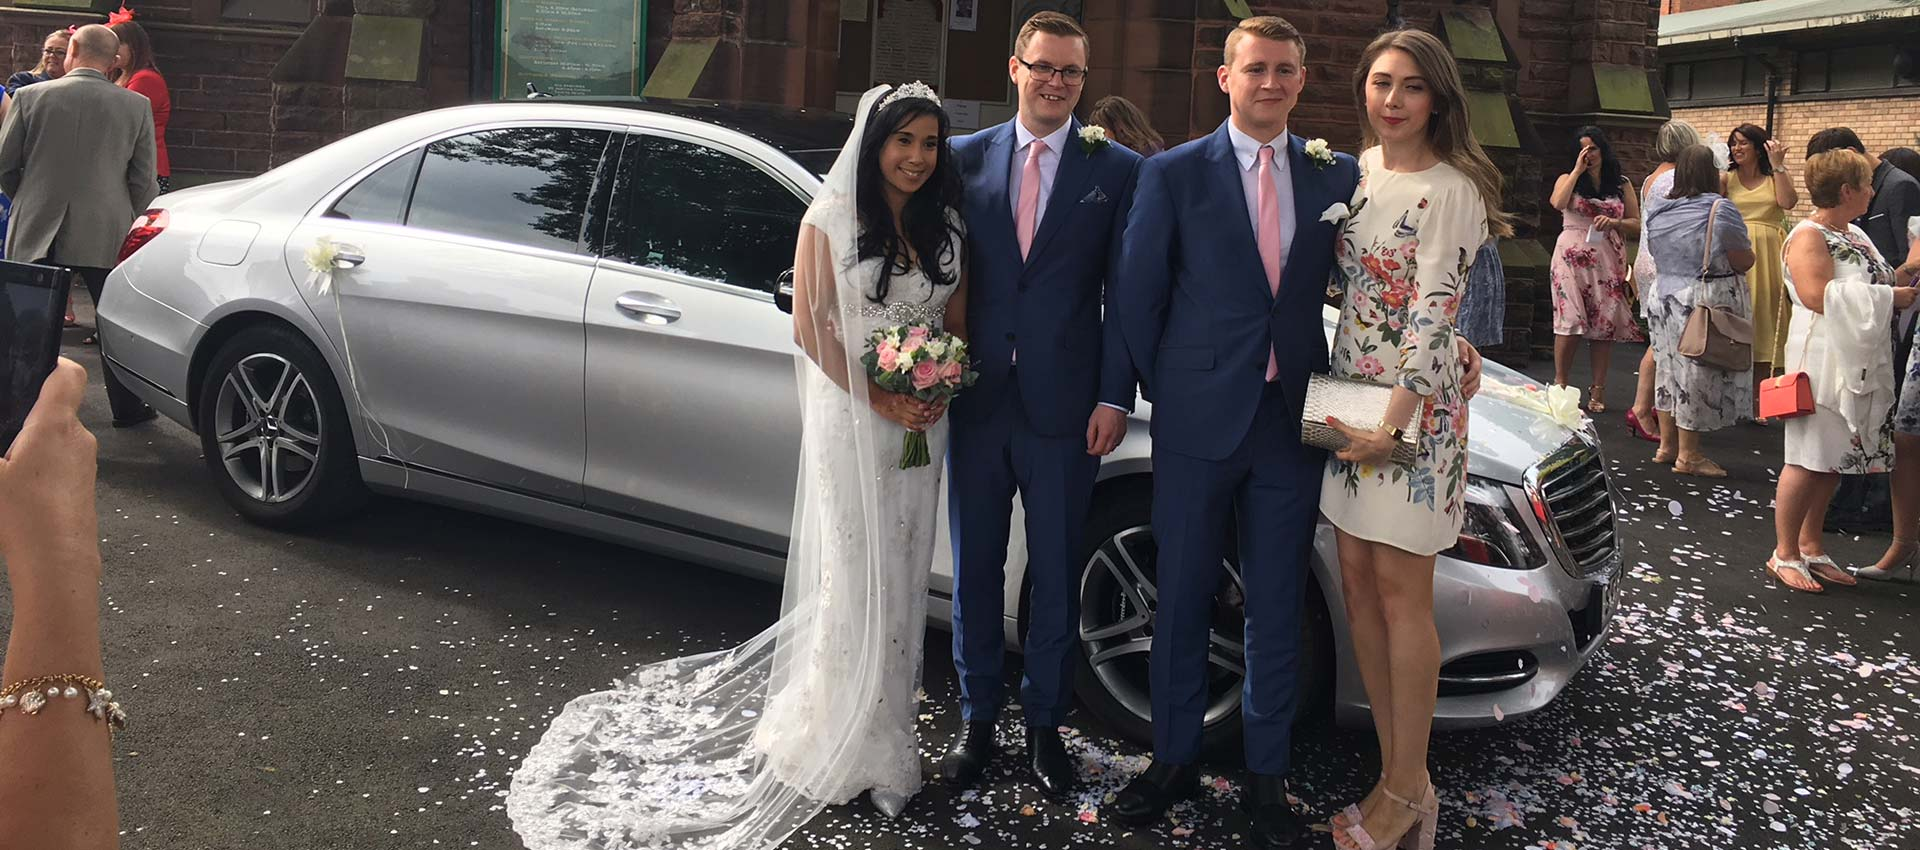 Wedding Car Chauffeur Hire Cheshire Chester